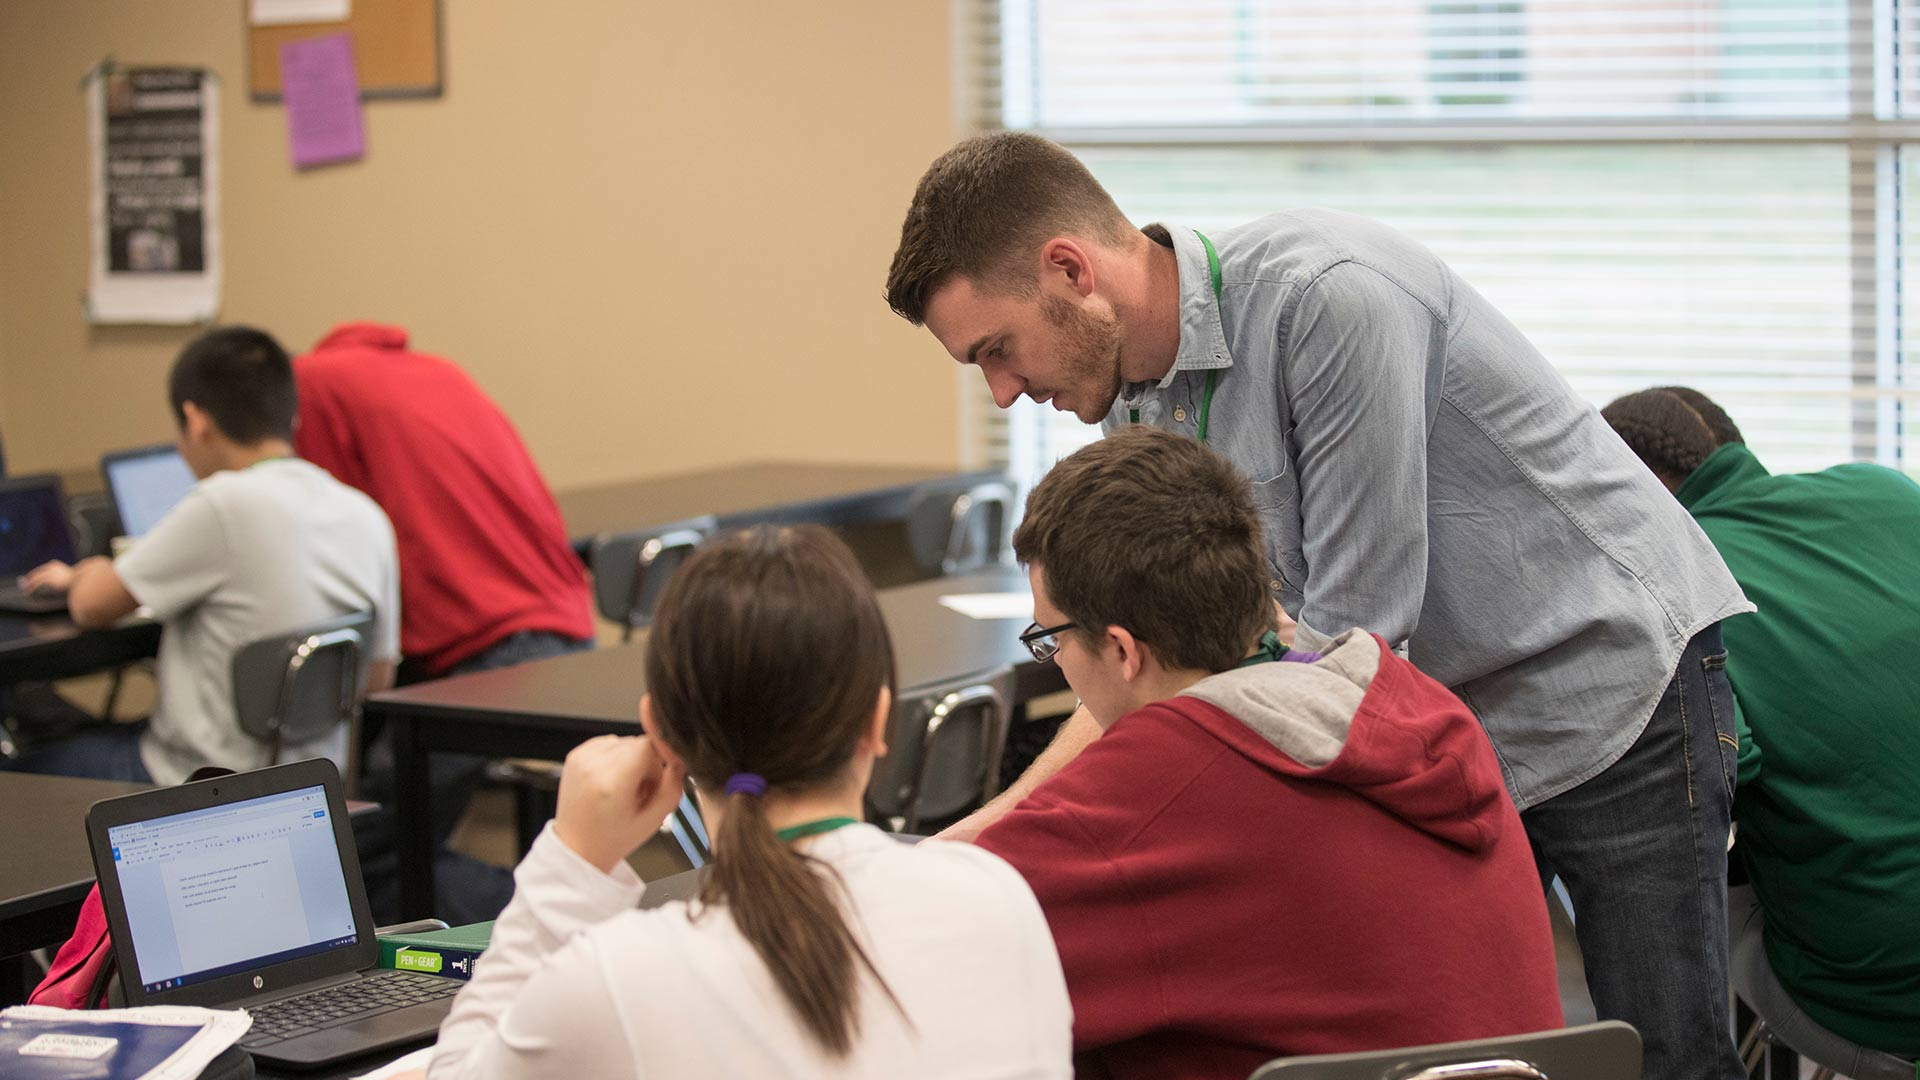 Student teacher working with students in high school classroom